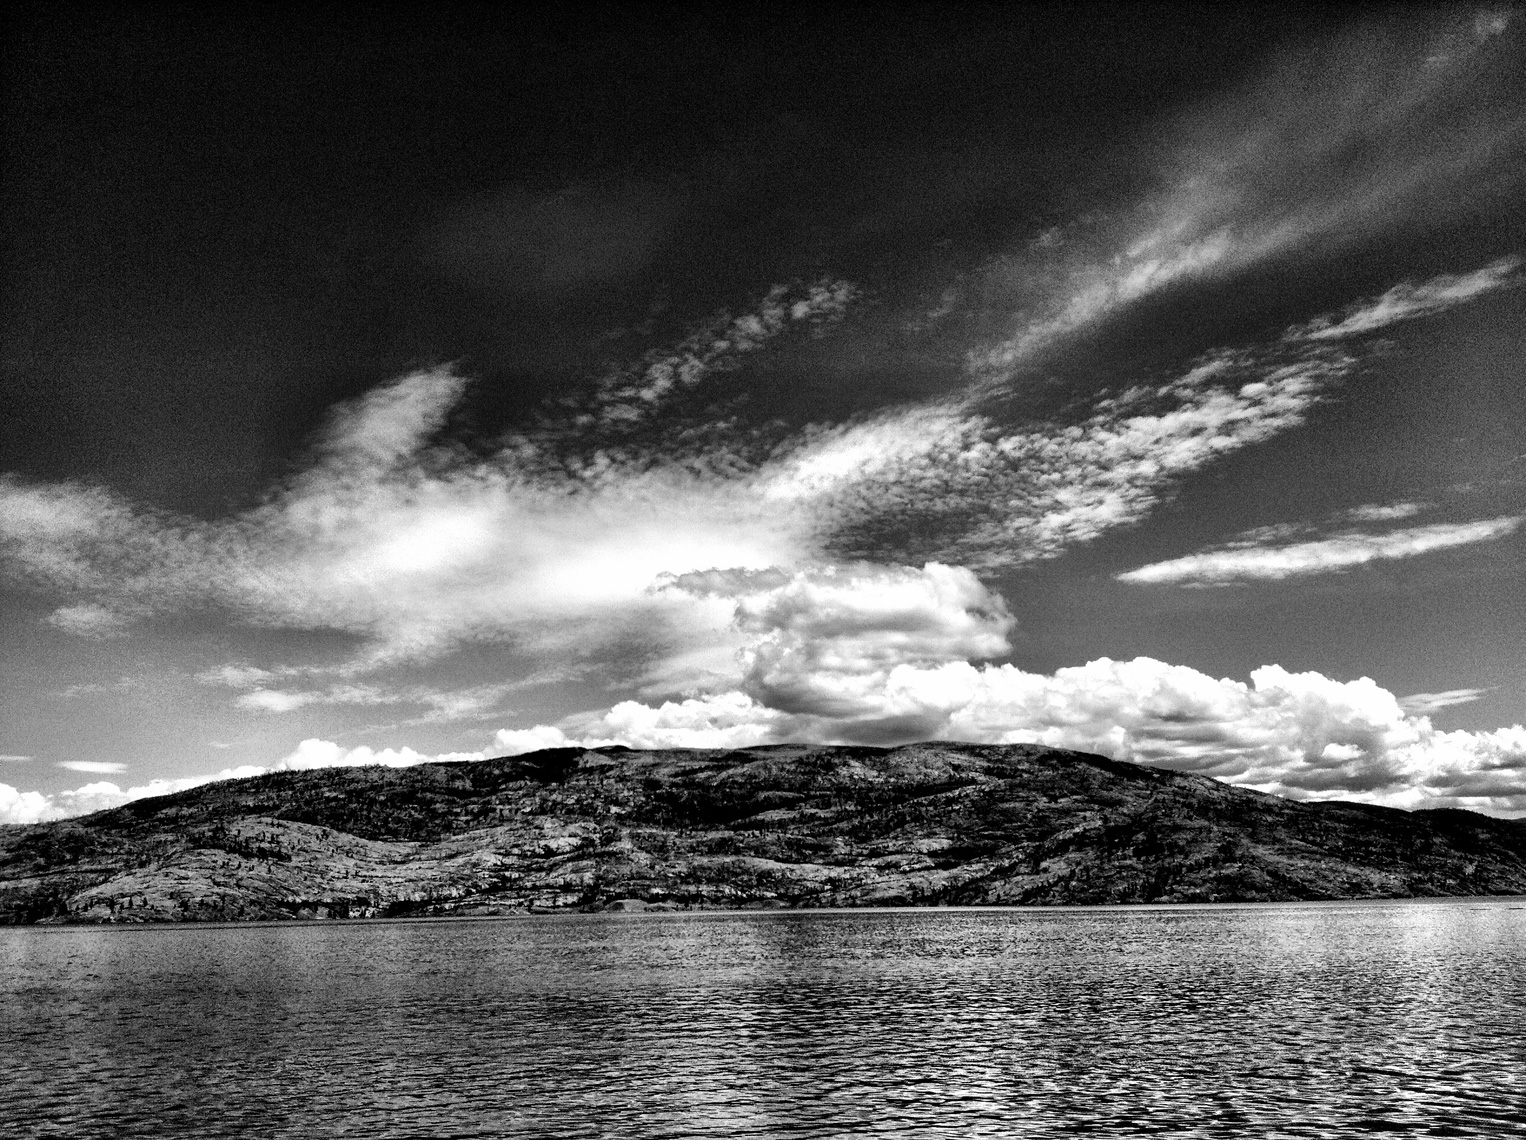 Los Angeles Dog Photography, Michael Brian, Canadian lake landscape, iphone photography, iPhoneography